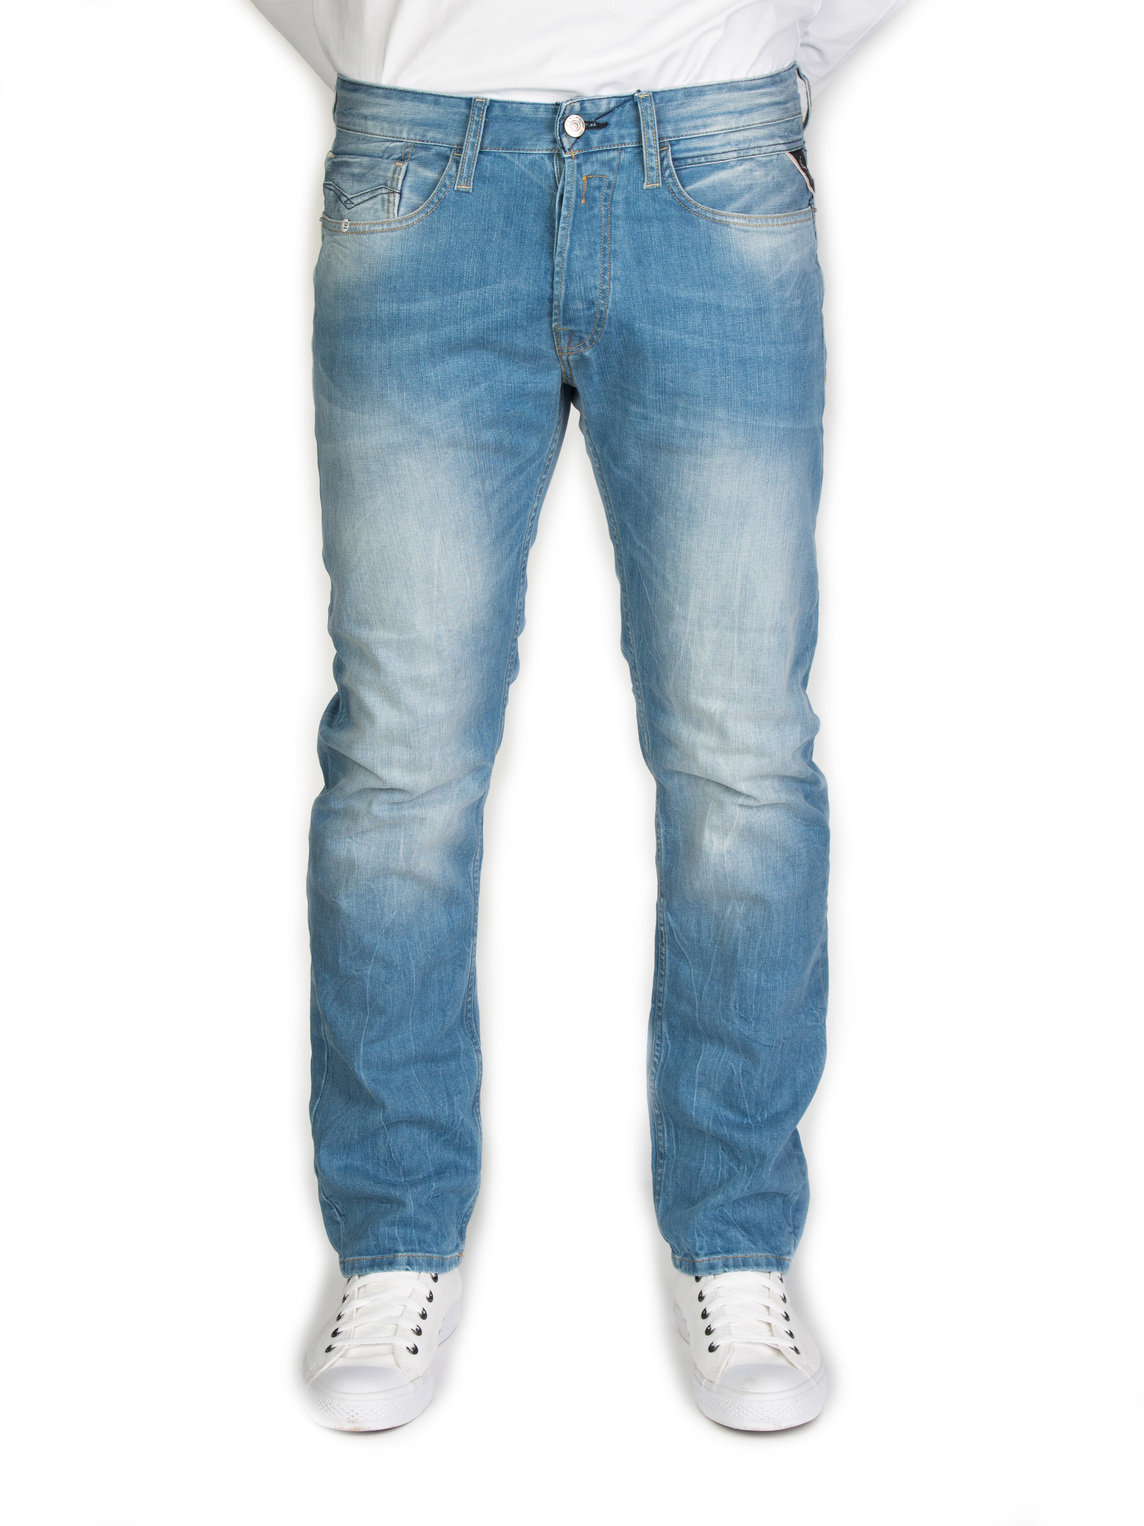 bb76df73c12a Sometimes comfort is your number one concern and the Newbill Replay Jeans  are the perfect comfort denim. With a loose fit throughout these are the  ideal ...